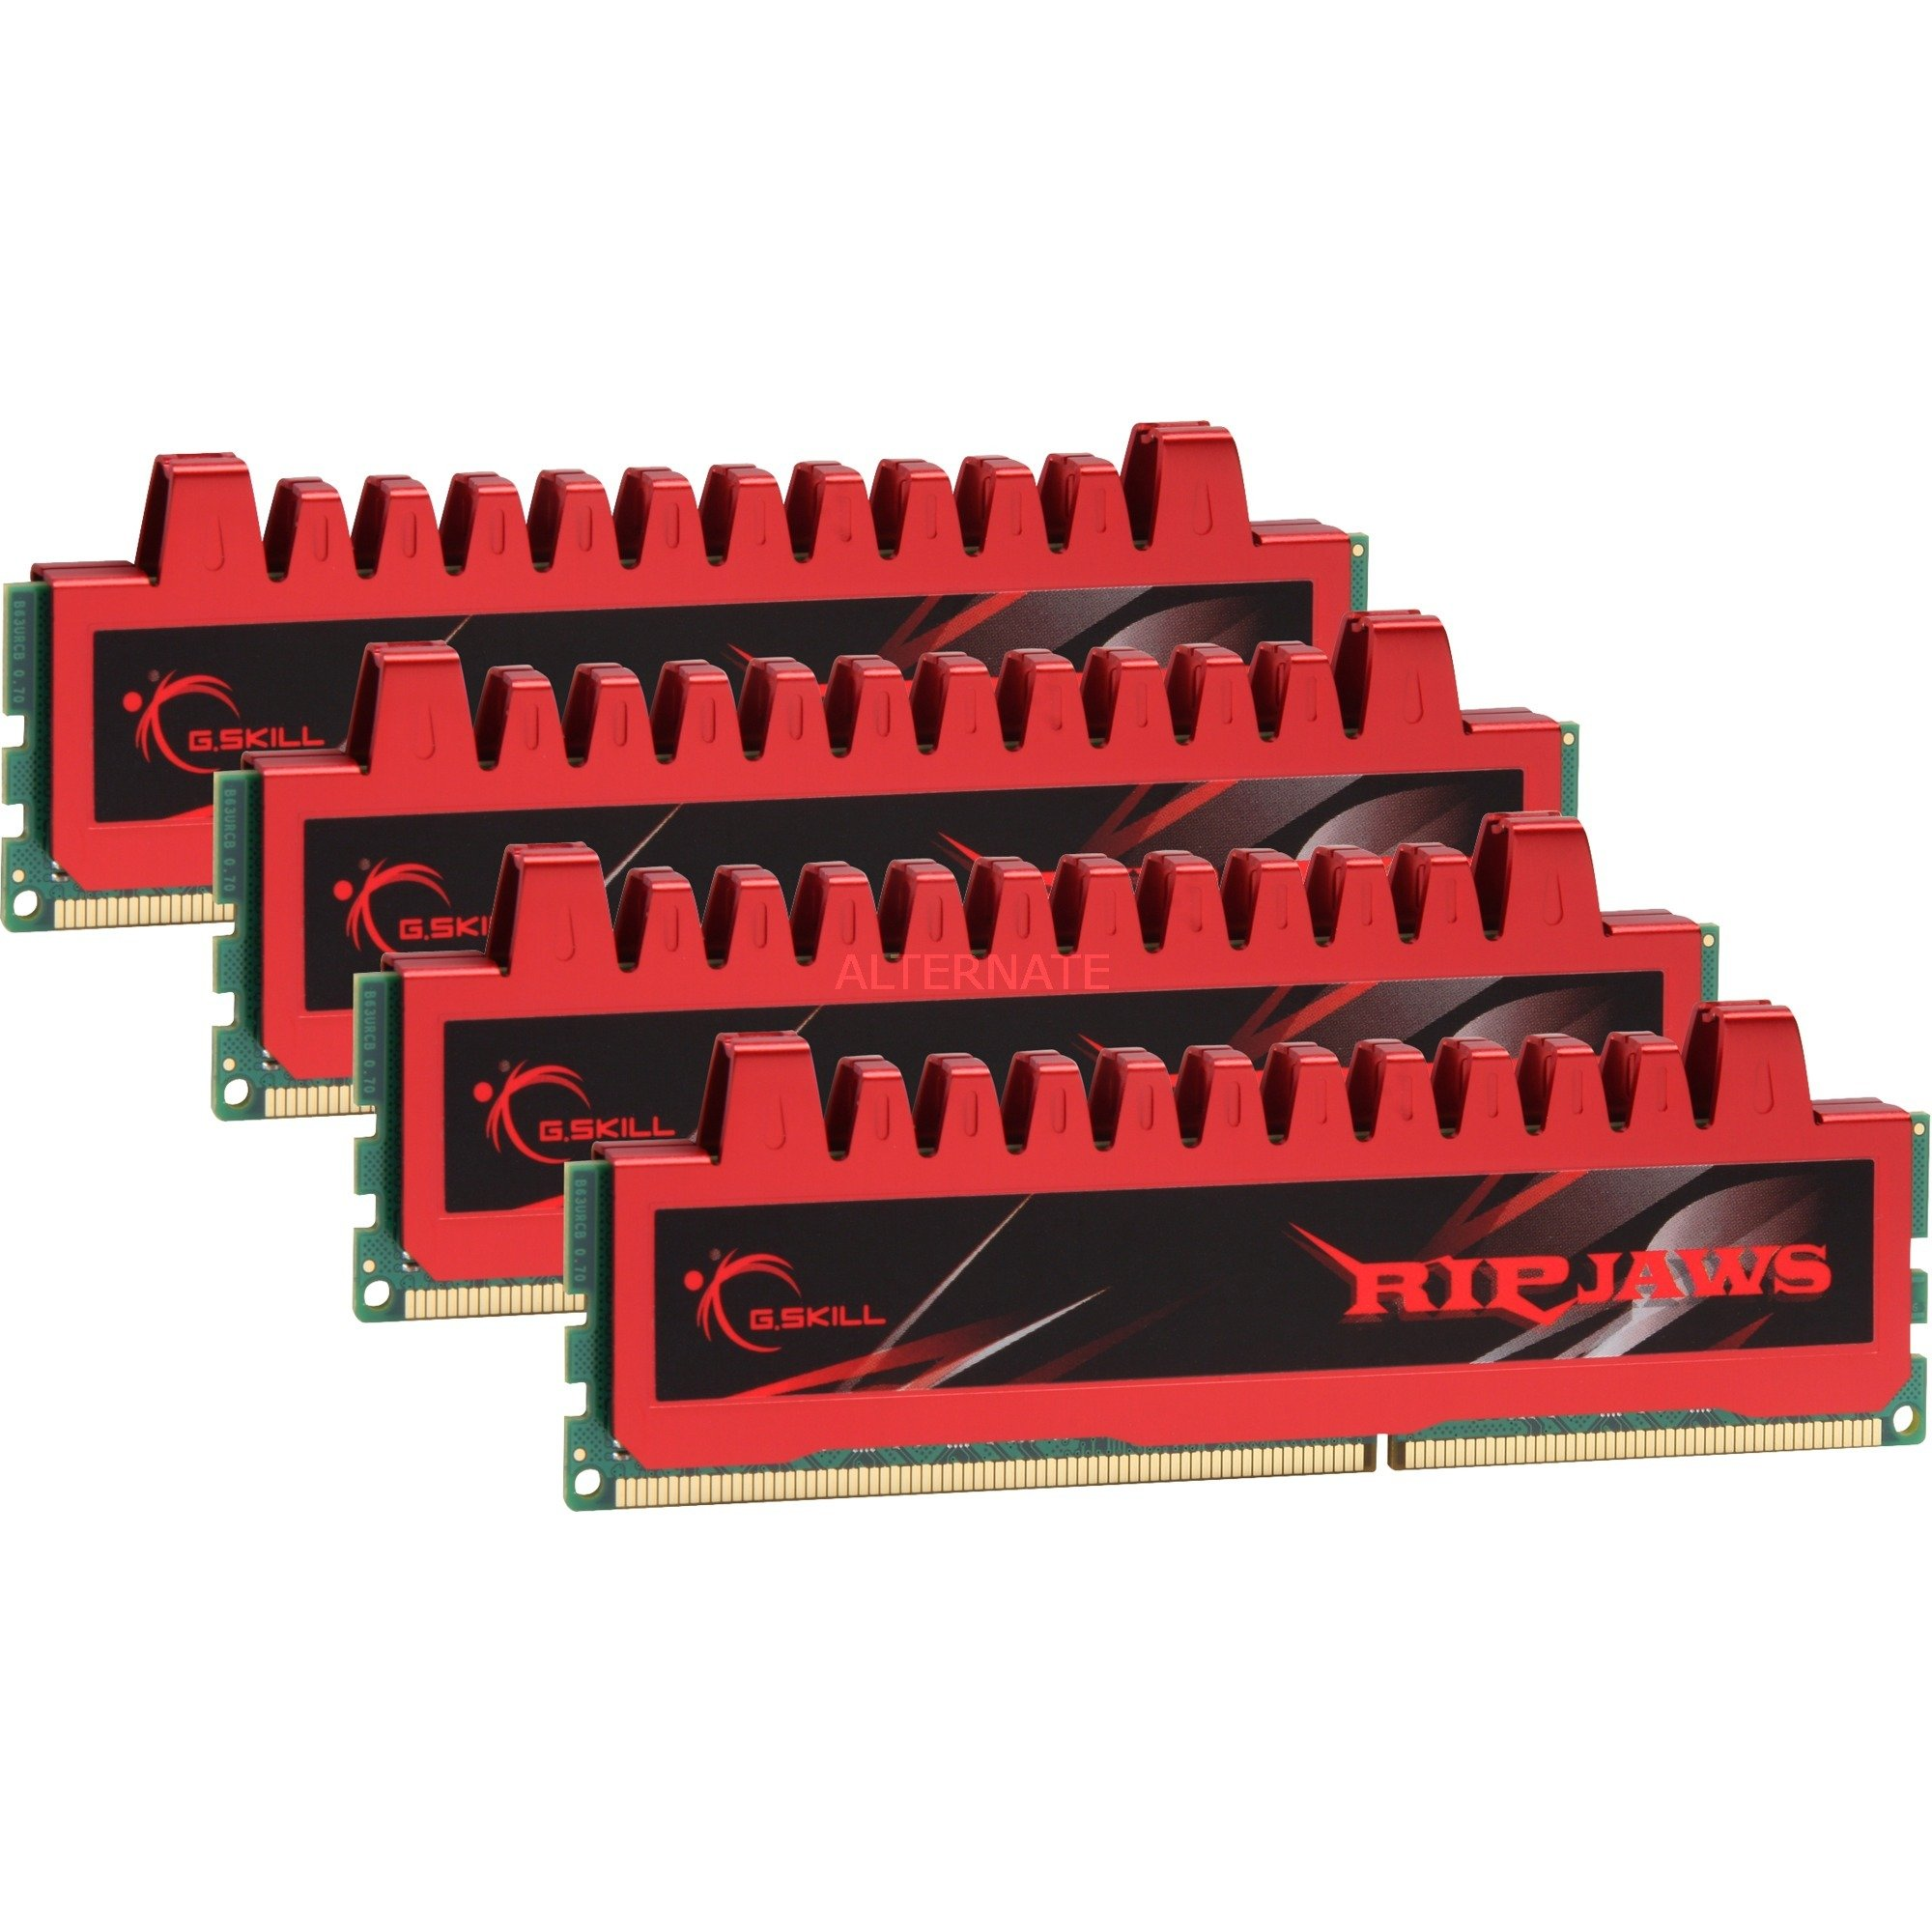 Ripjaws 16GB kit DDR3-1333MHz 16Go DDR3 1333MHz module de mémoire